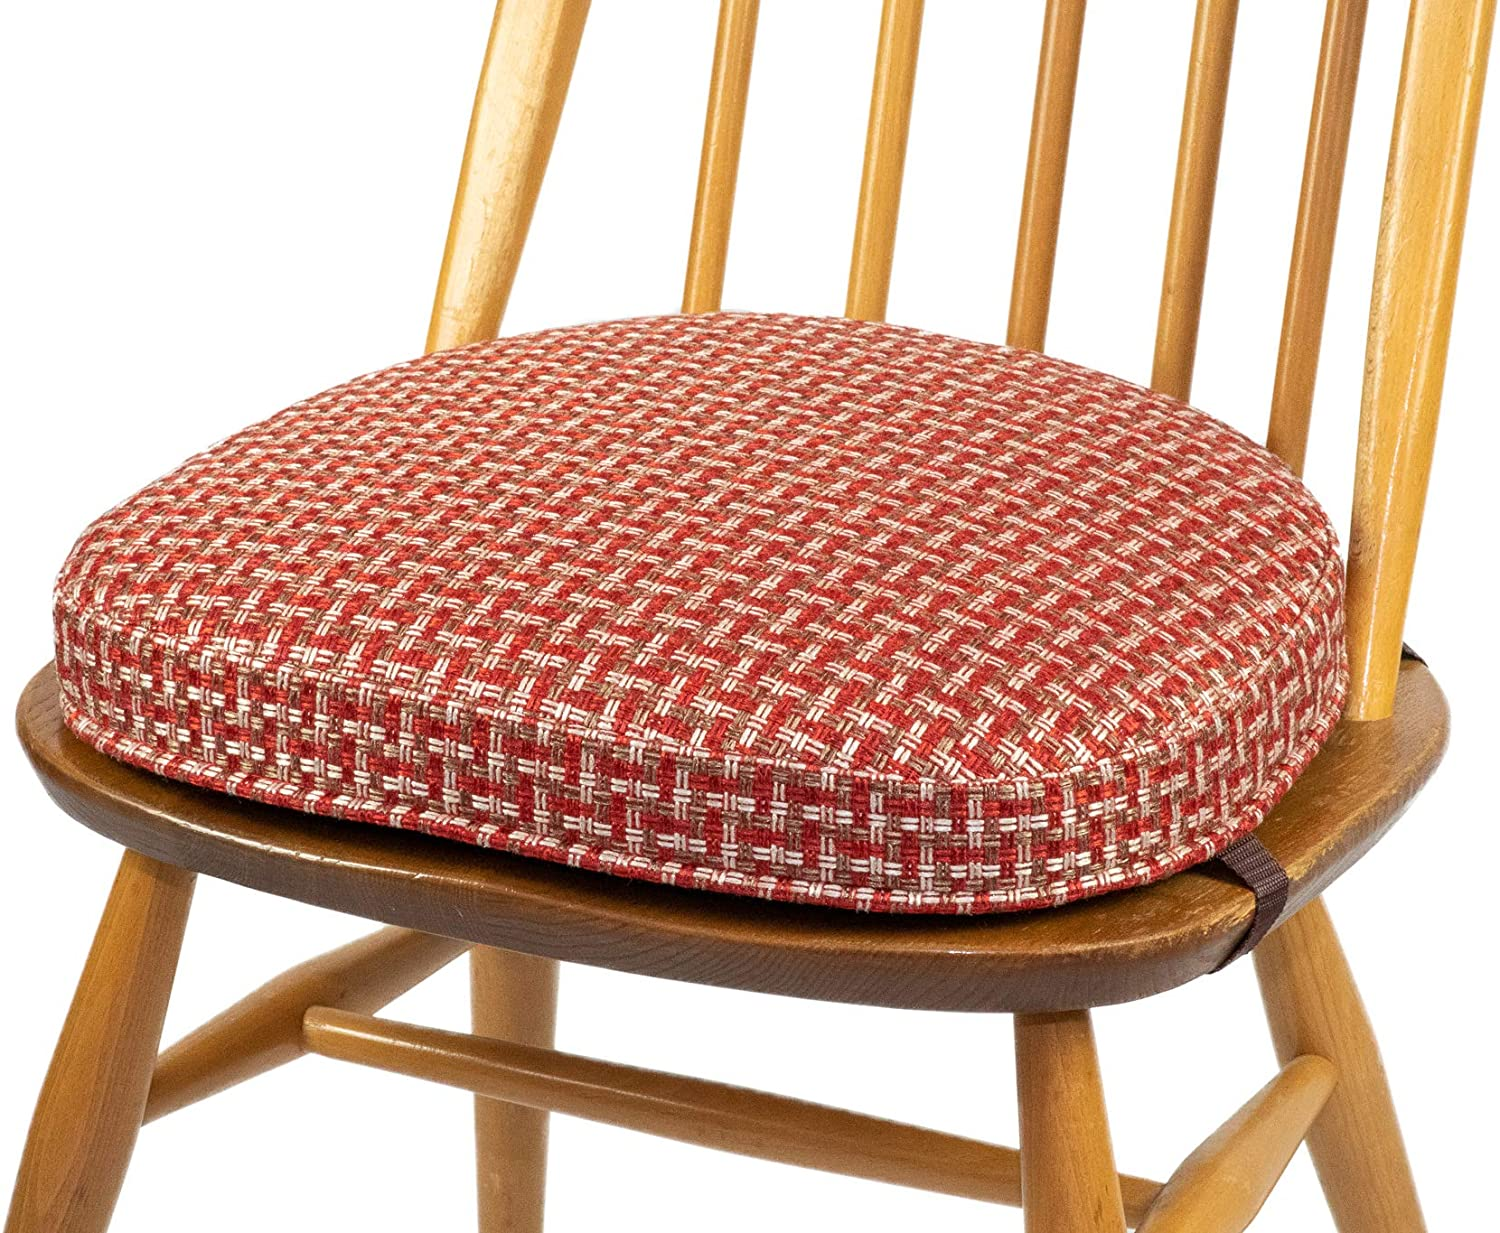 Inspirado Seat Cushion For Ercol Windsor Dining Chair Seat Width 422mm 01 Red Brown And White Order Several If A Set Is Required Amazon Co Uk Kitchen Home